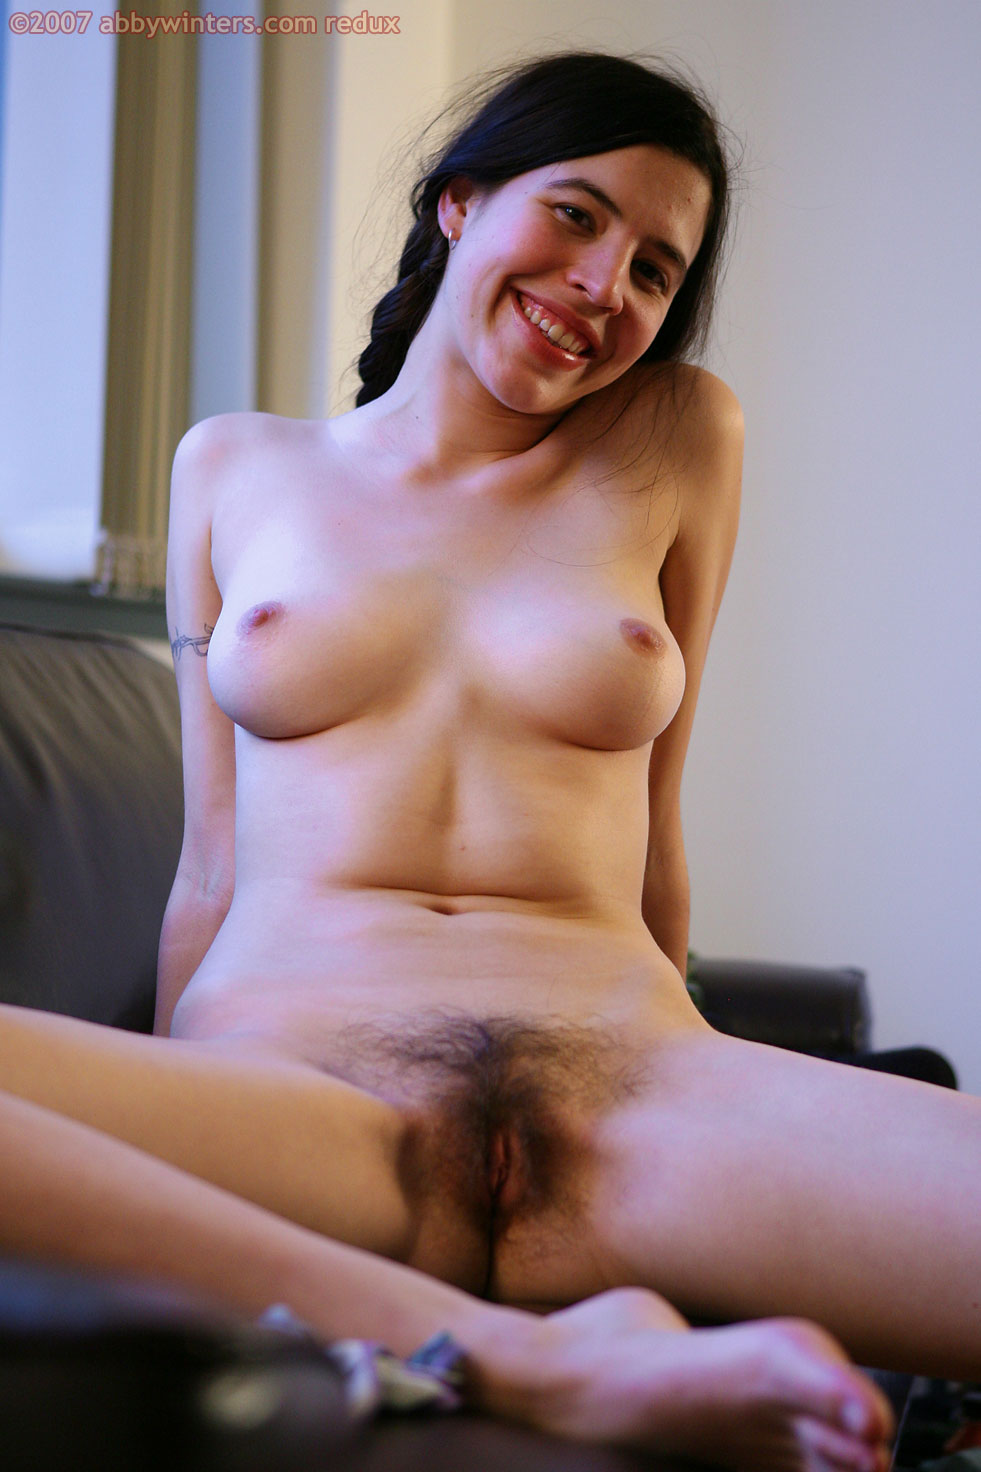 Best of abby winters